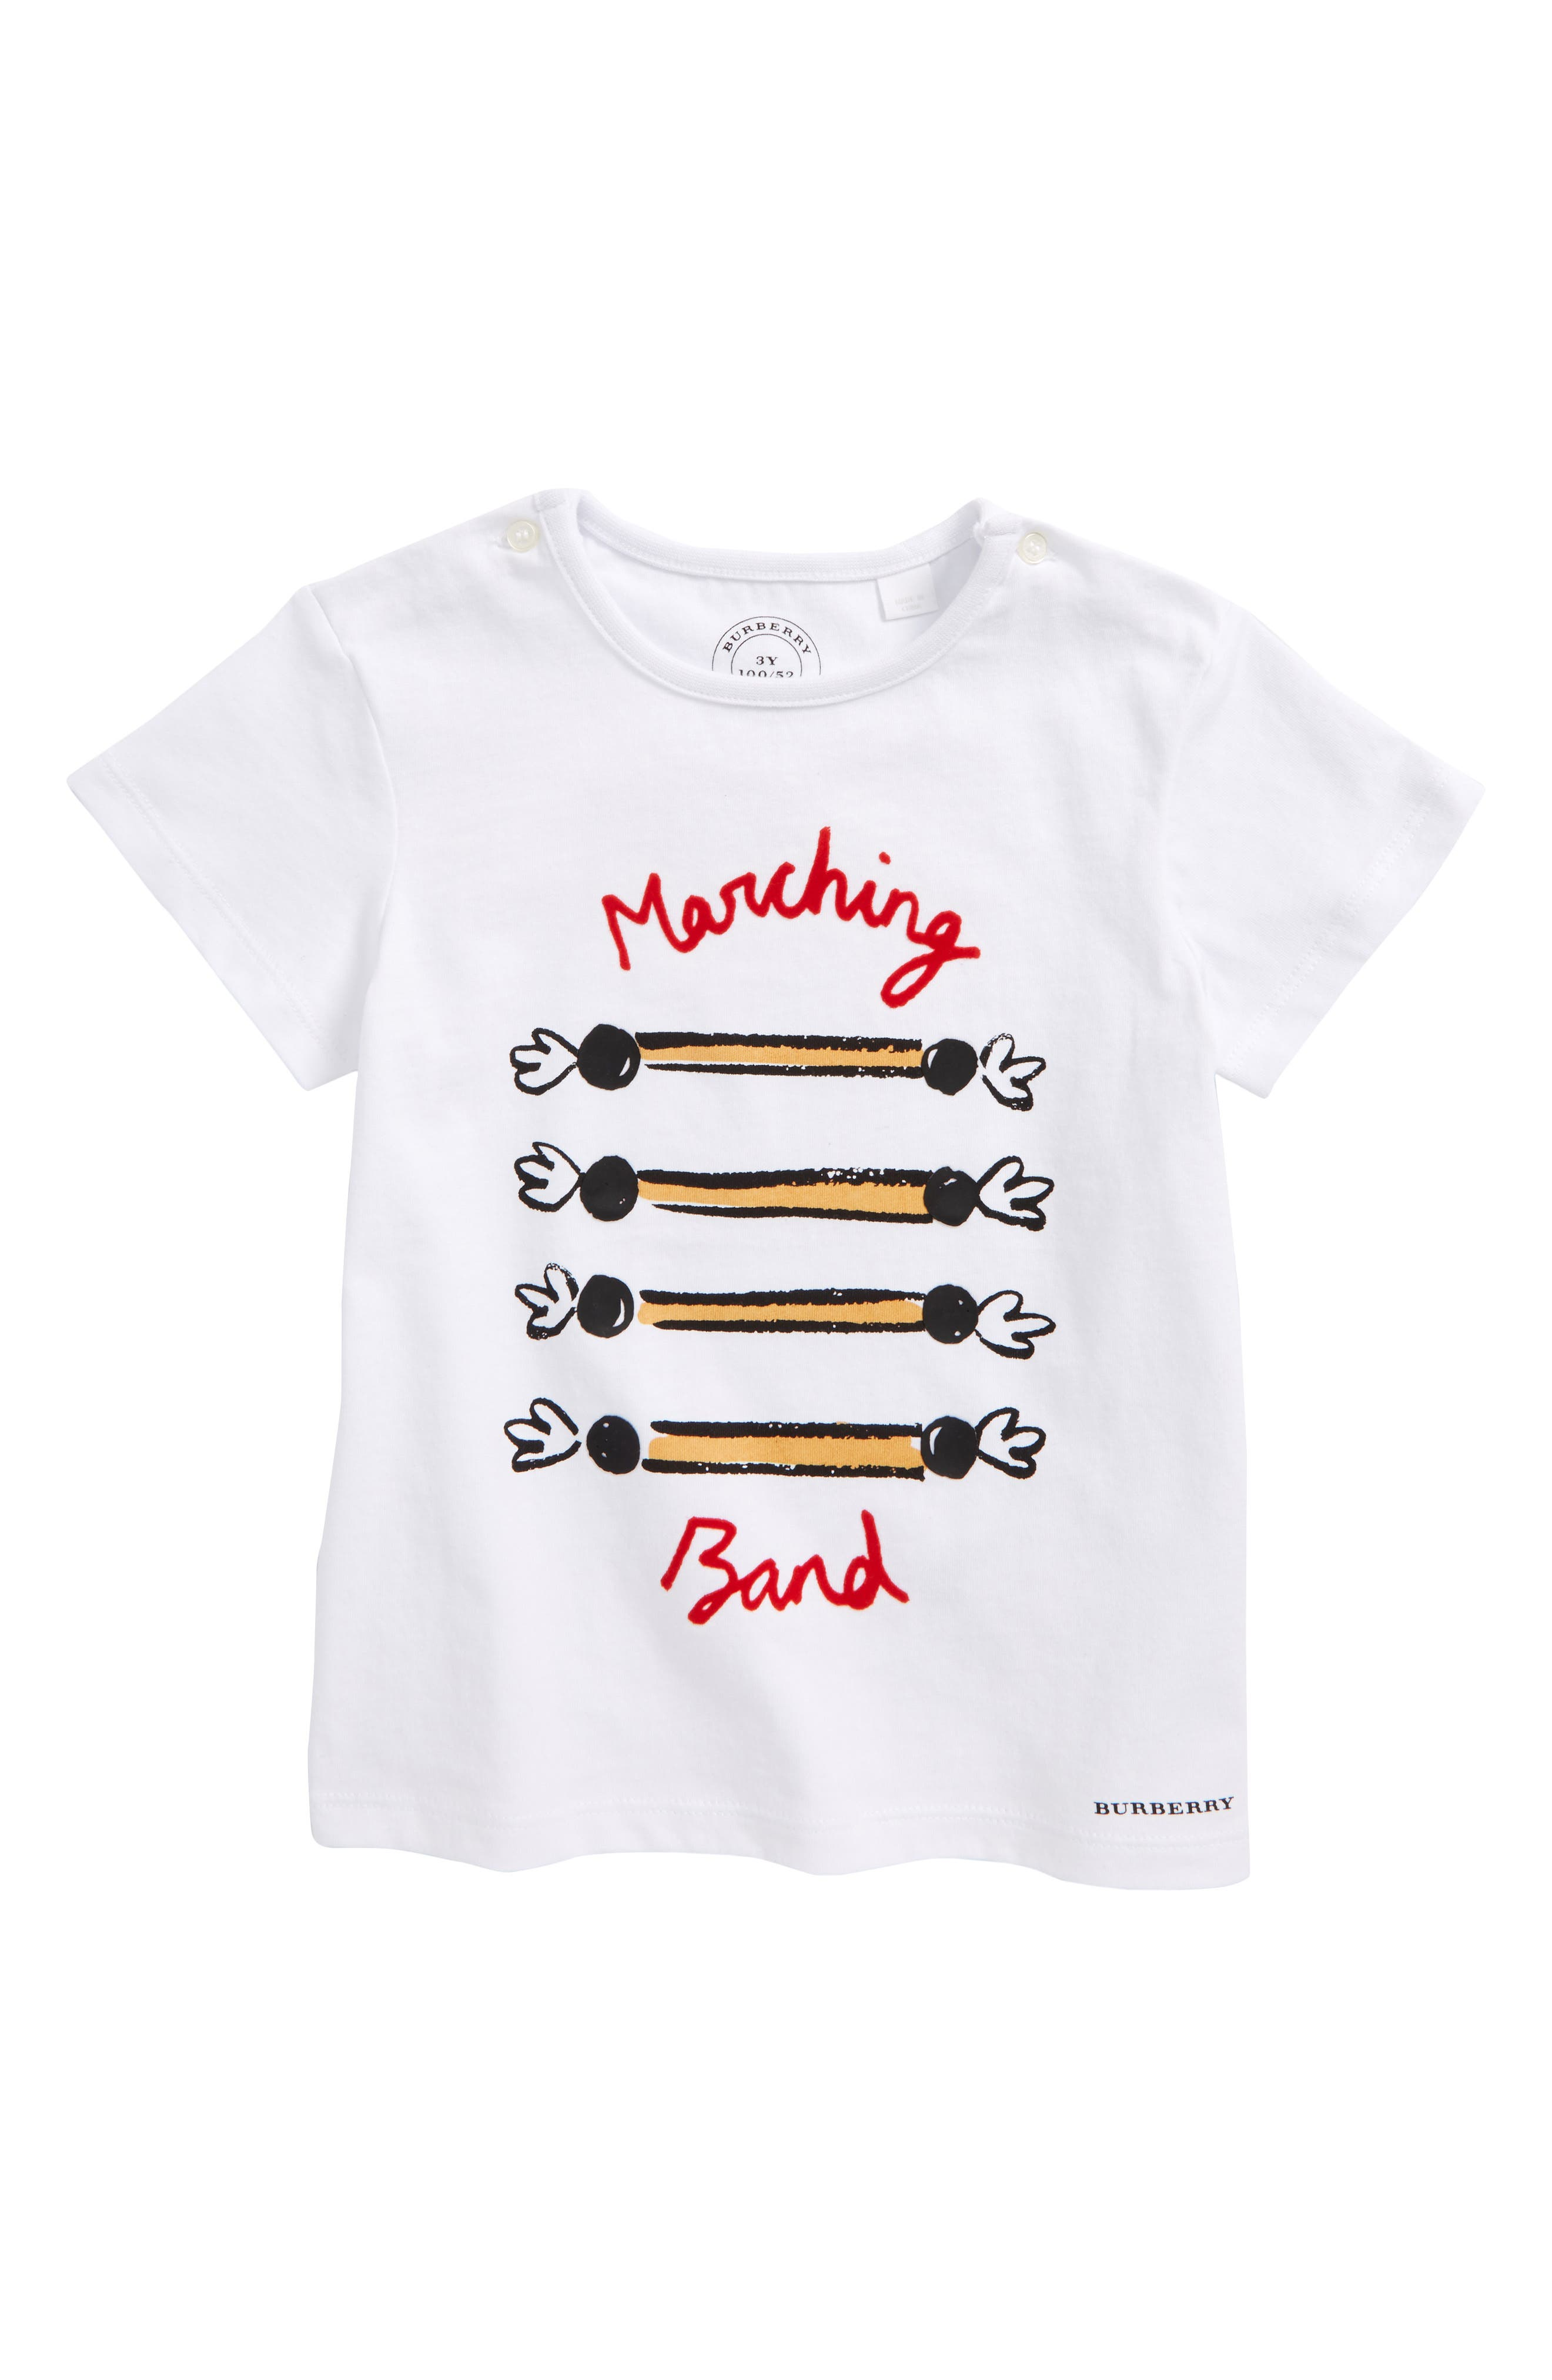 Main Image - Burberry Marching Band Tee (Baby)